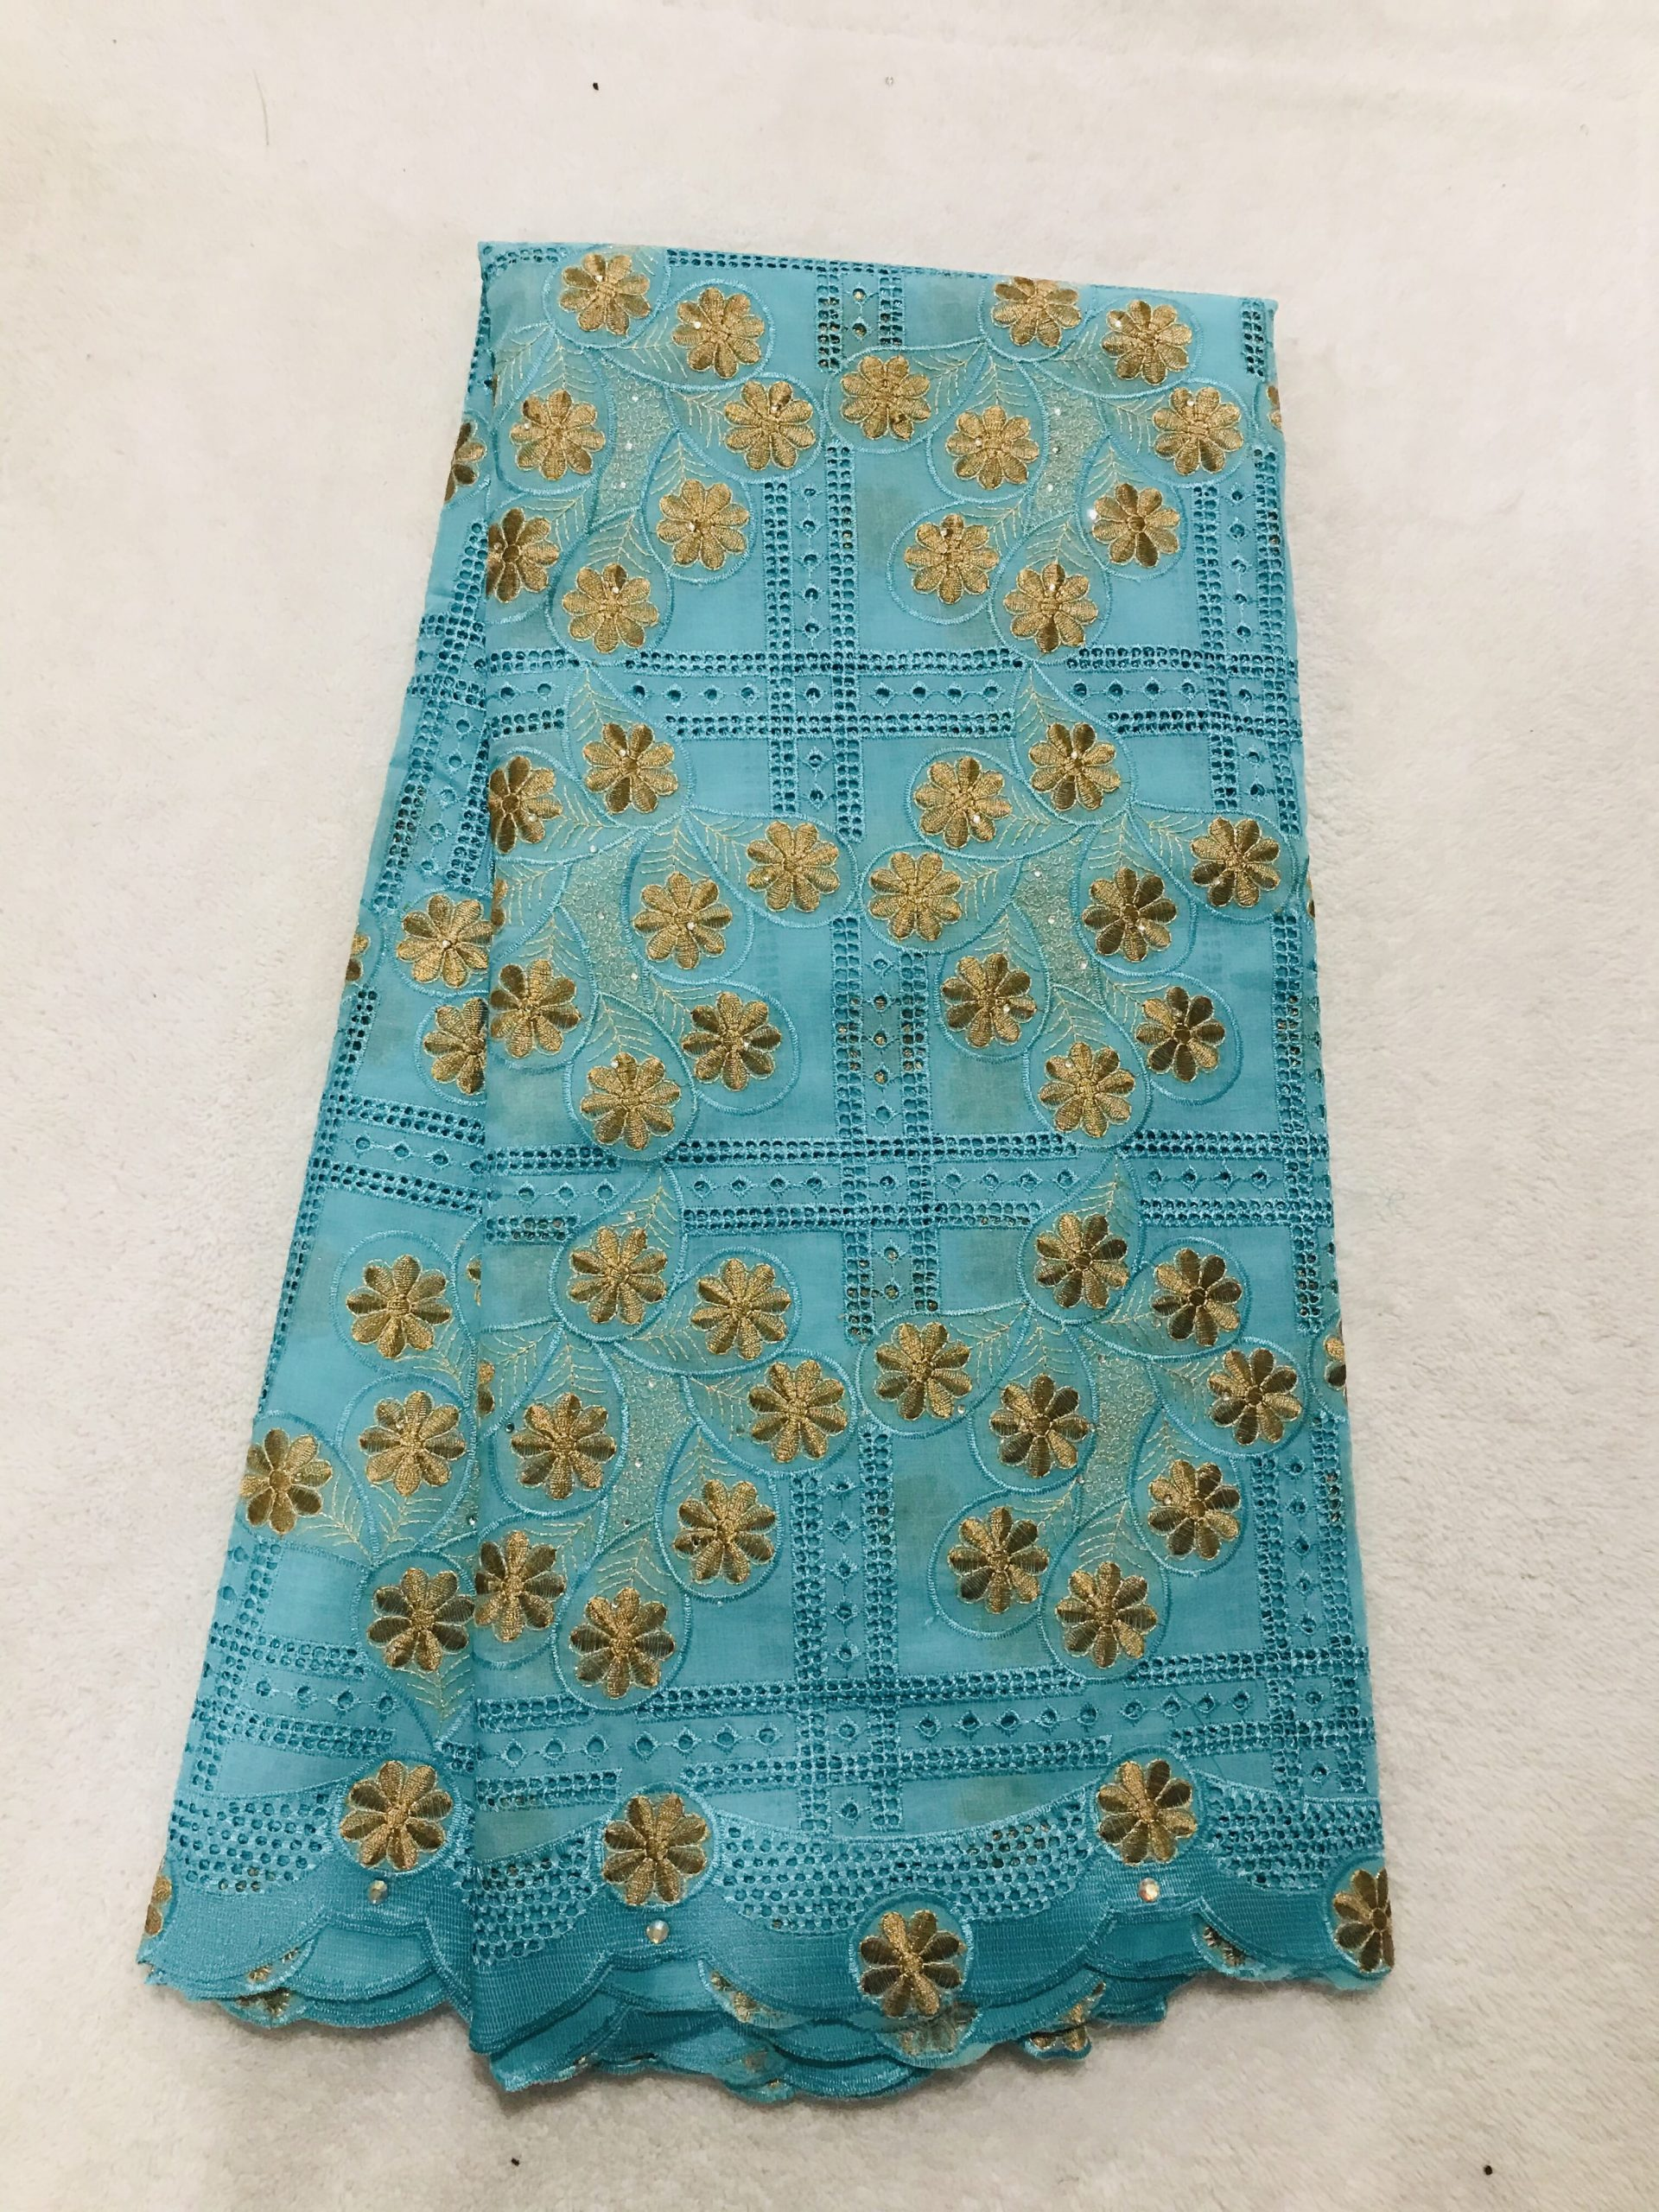 Bbfash African Fashion Lace Fabric. 5 yards 2019 fancy Green and Gold Embroidery Stones Lace.French Lace Fabric Embroidered and Rhinestones Coton Cord Lace for Wedding  Party & More